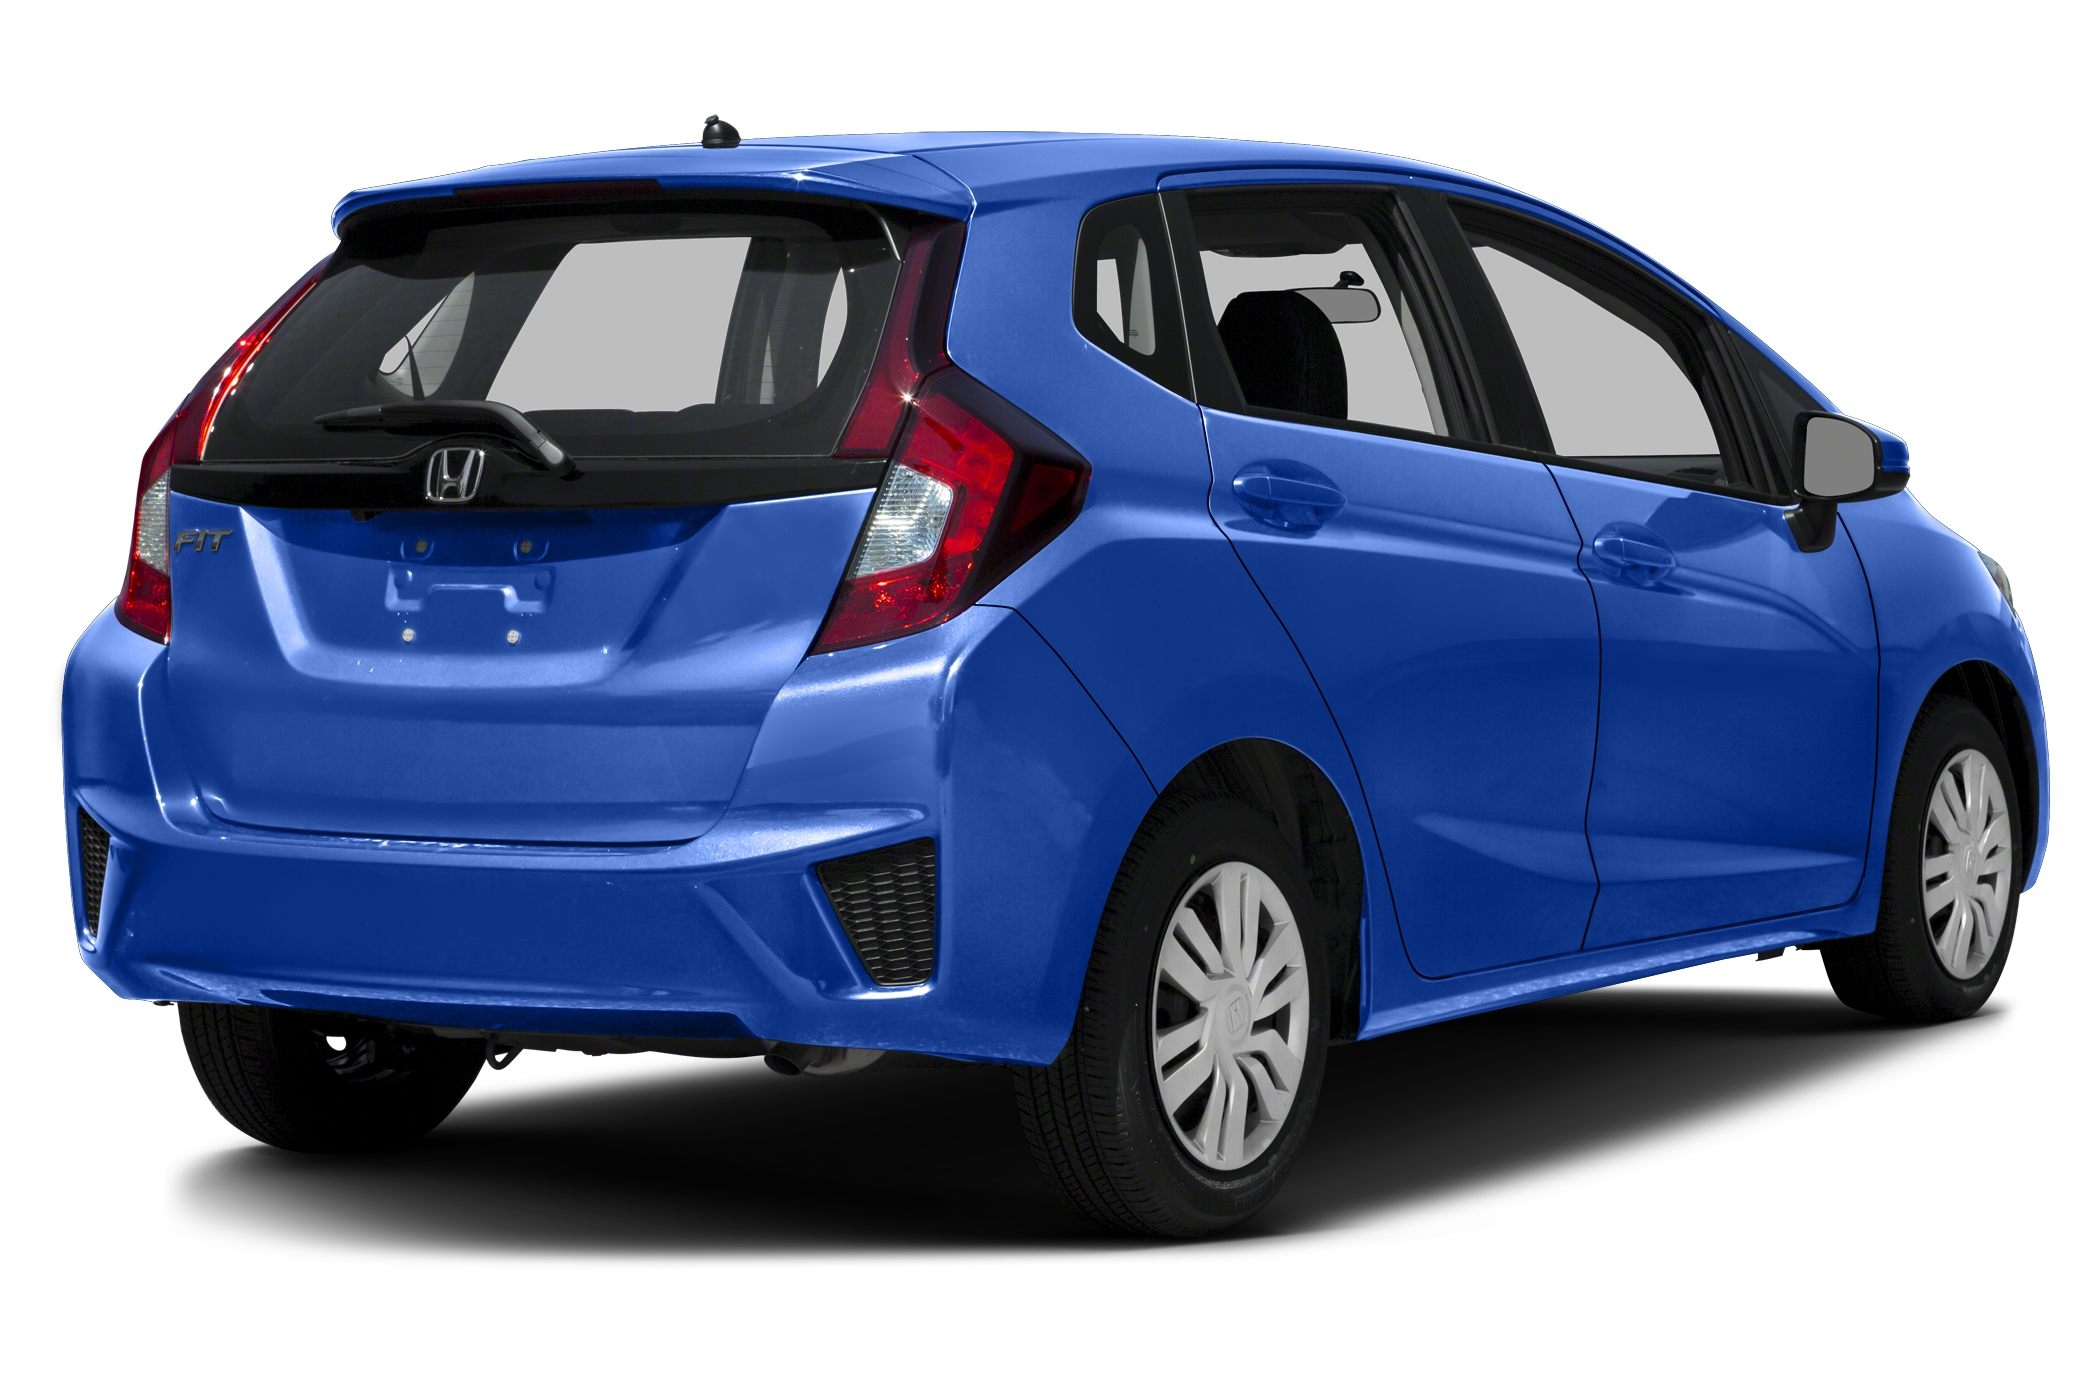 honda fit invoice price new 2016 honda fit price photos reviews safety ratings amp features 2100 X 1386